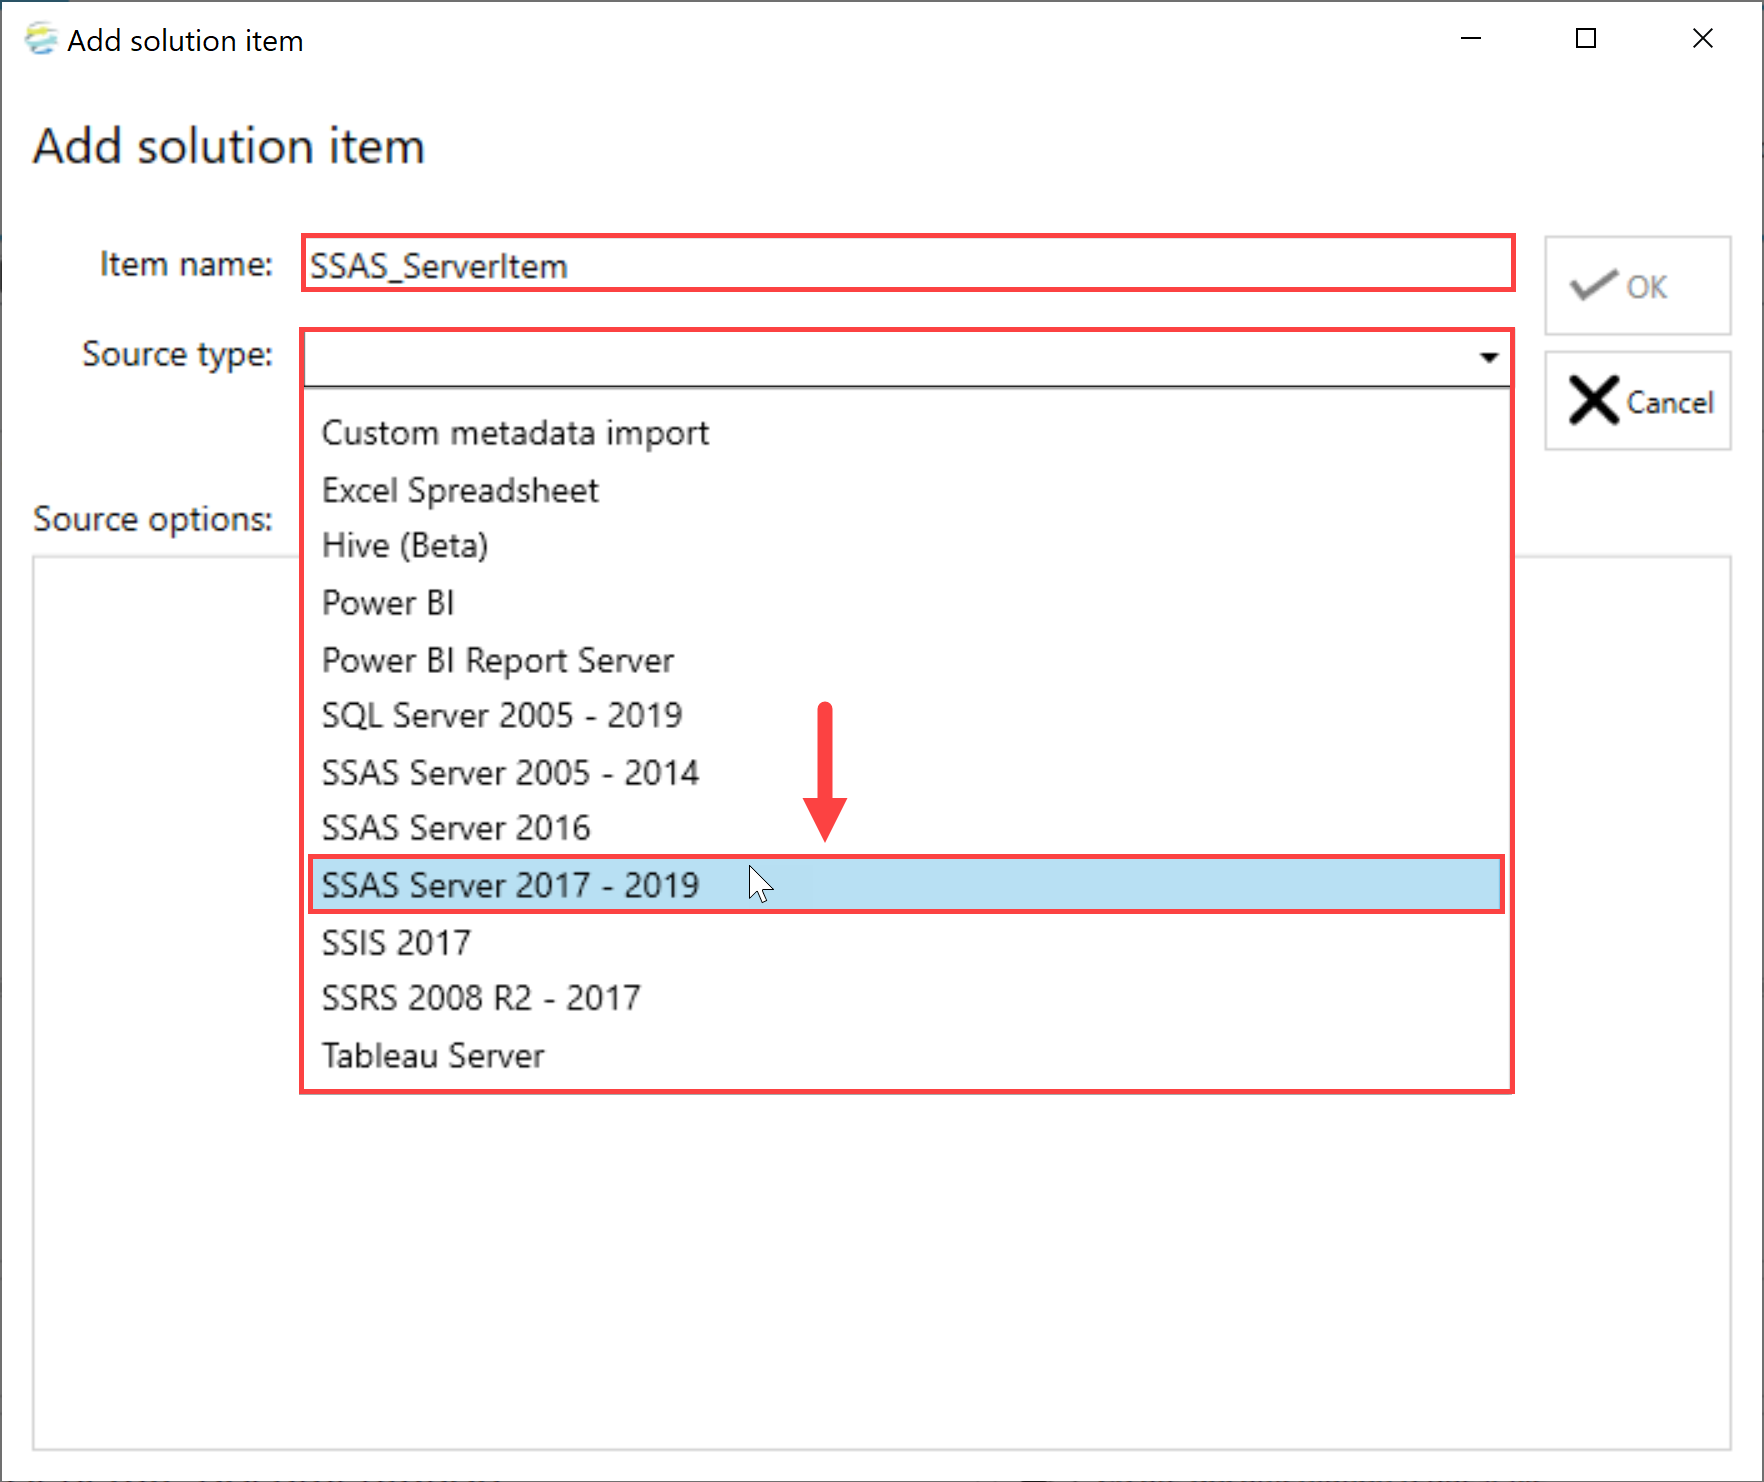 DOC xPress Add Solution Item SSAS Server 2017